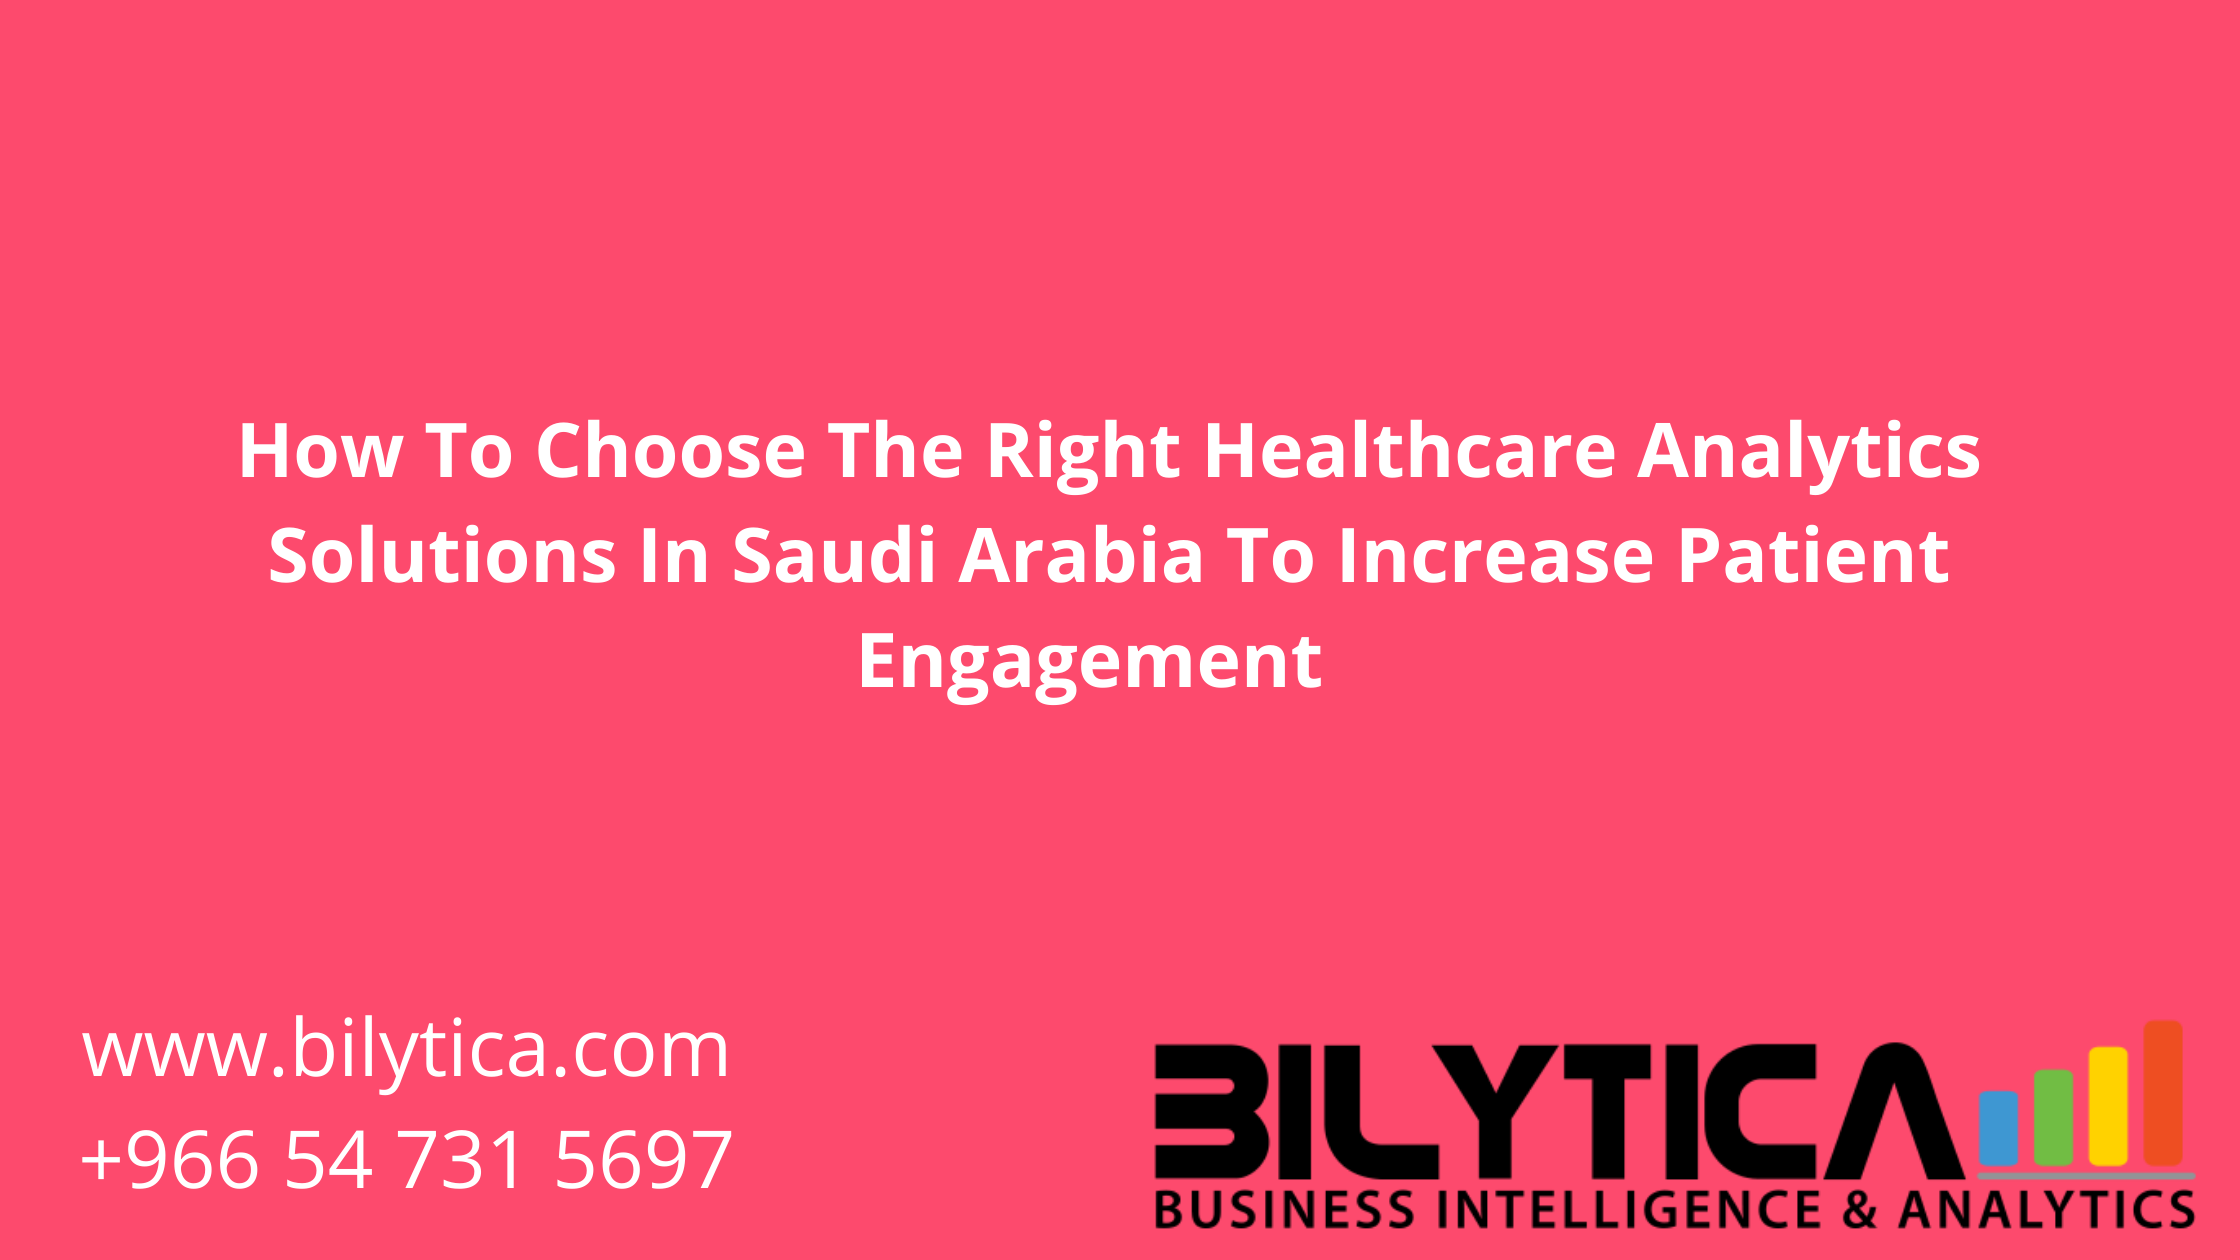 How To Choose The Right Healthcare Analytics Solutions In Saudi Arabia To Increase Patient Engagement